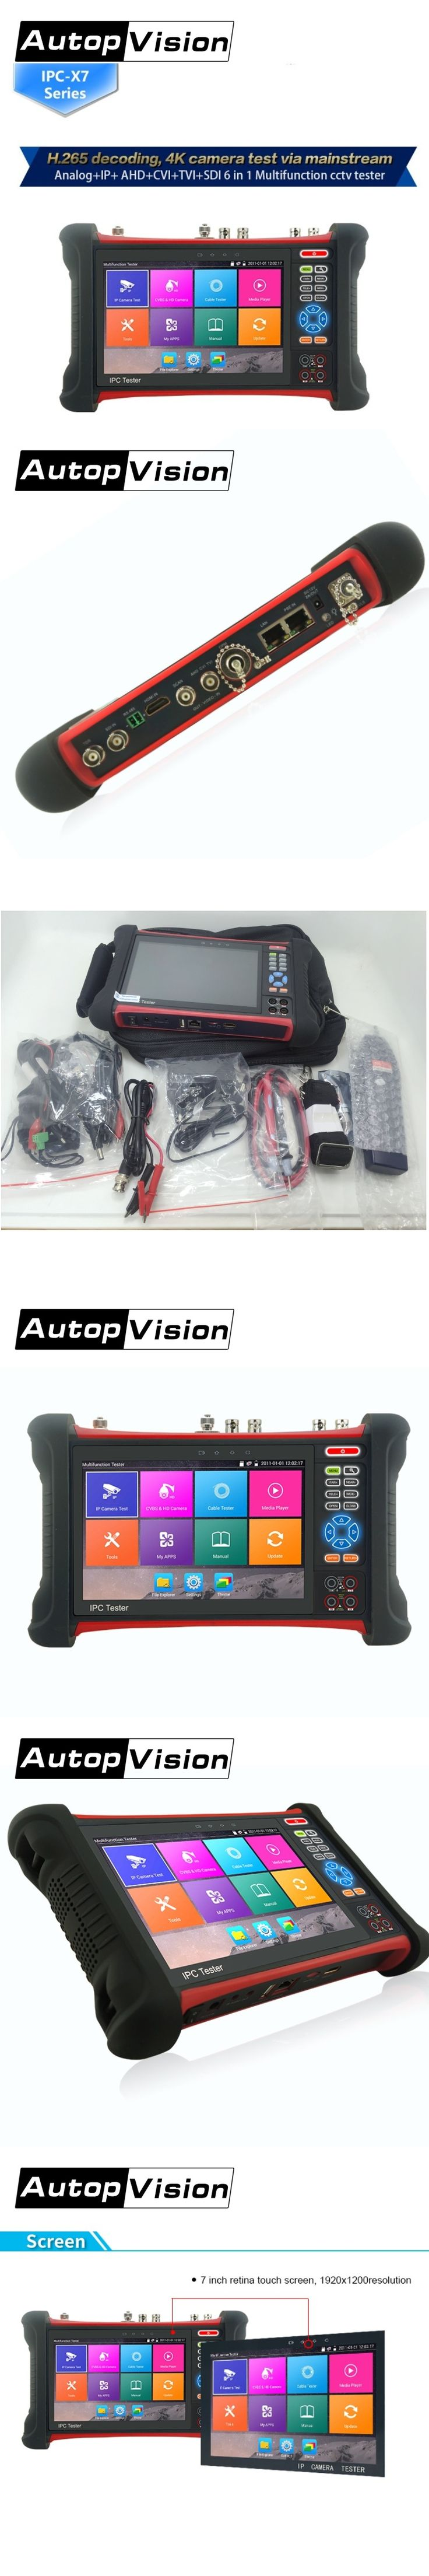 DHL free New H.265 4K 6 in 1 IP SDI TVI CVI AHD CCTV Camera Tester Monitor with Digital Multi-meter,HDMI in/out,POE Camera test